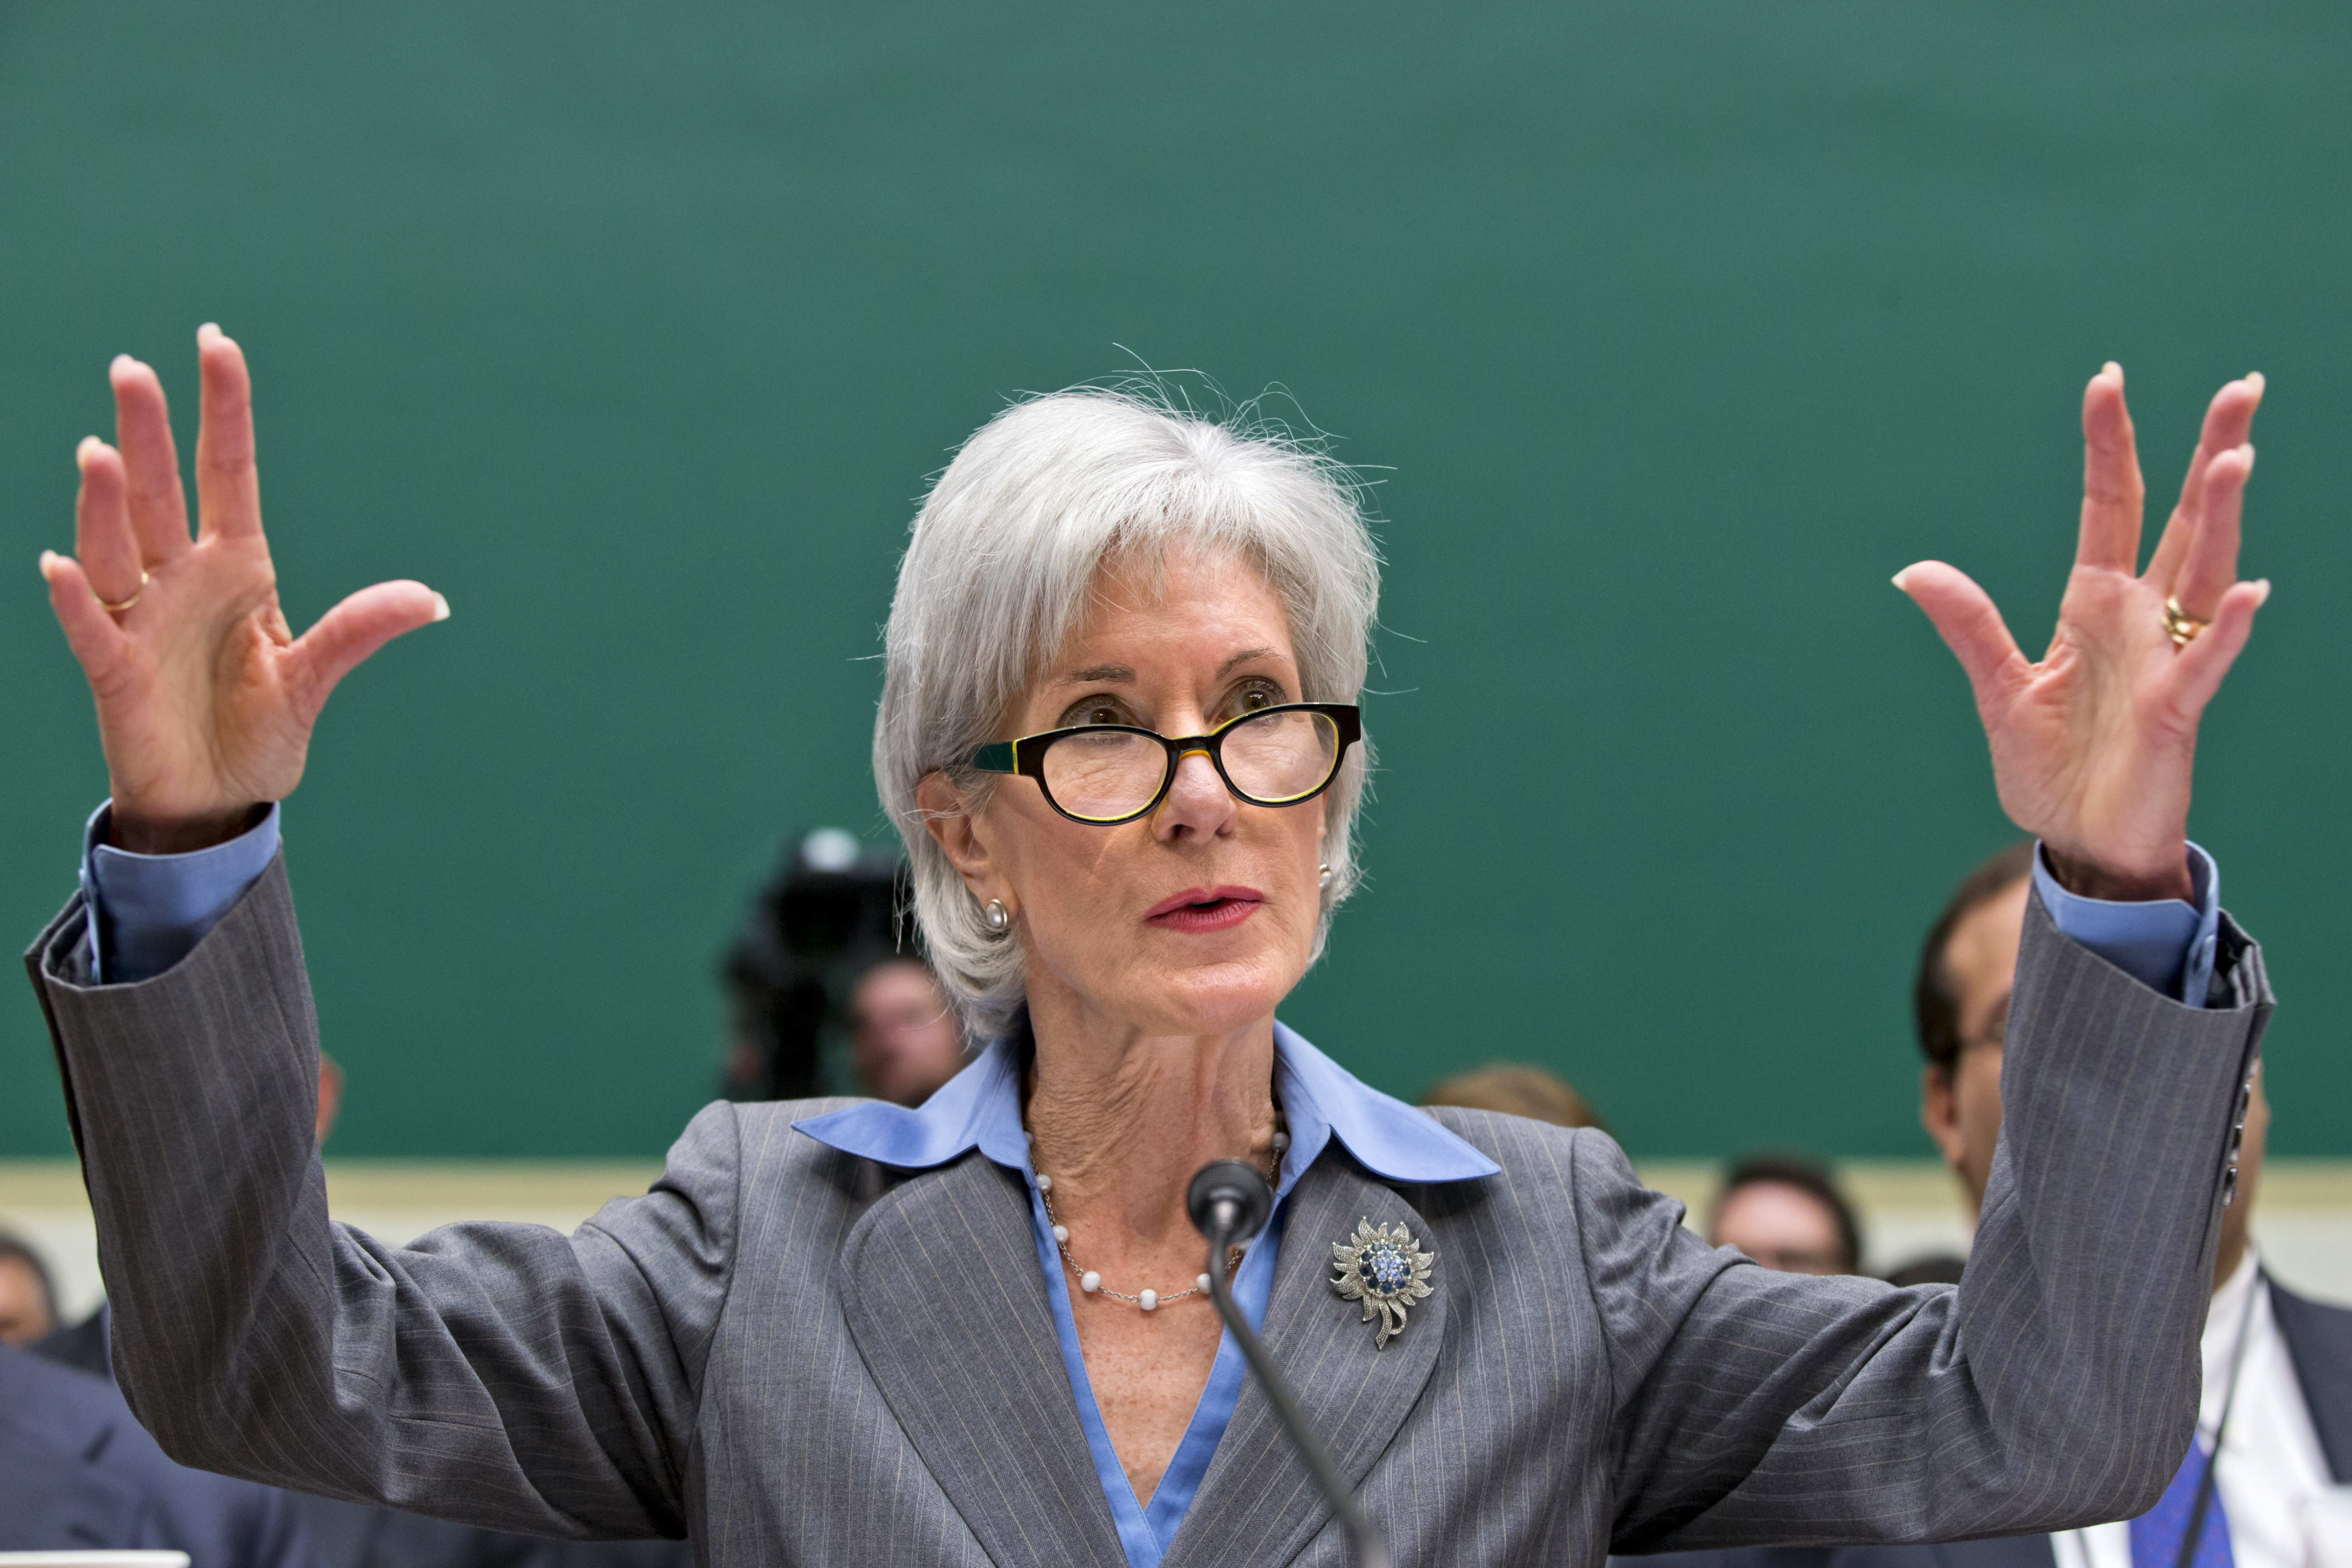 Kathleen Sebelius, under fire,  decided to step down.